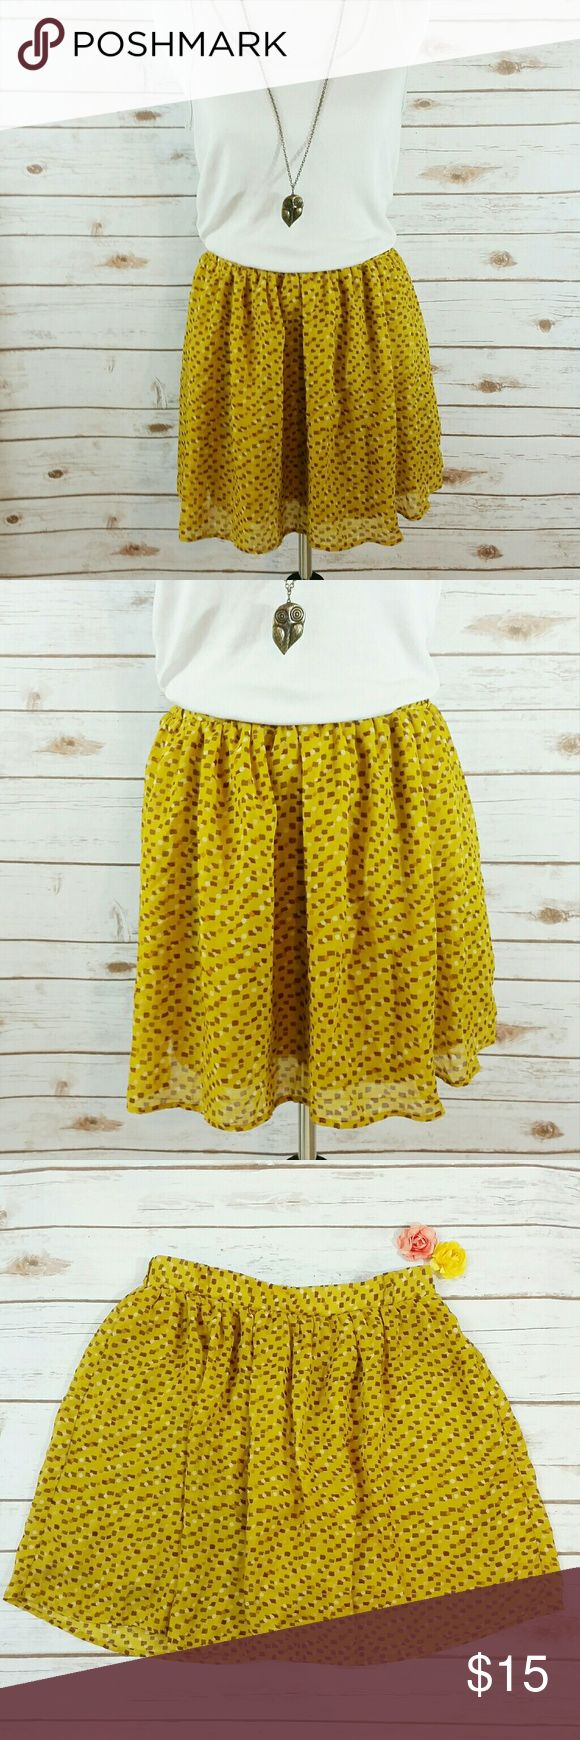 "Mossimo mustard yellow patterned skirt This mustard yellow skirt has a pattern of squares and circles that are yellows, browns, and tans. The waist is elastic in the back, and has belt loops. Waist is approx 26"", length is approx 17"". All measurements taken unstretched. 100% polyester Mossimo Supply Co. Skirts Midi"